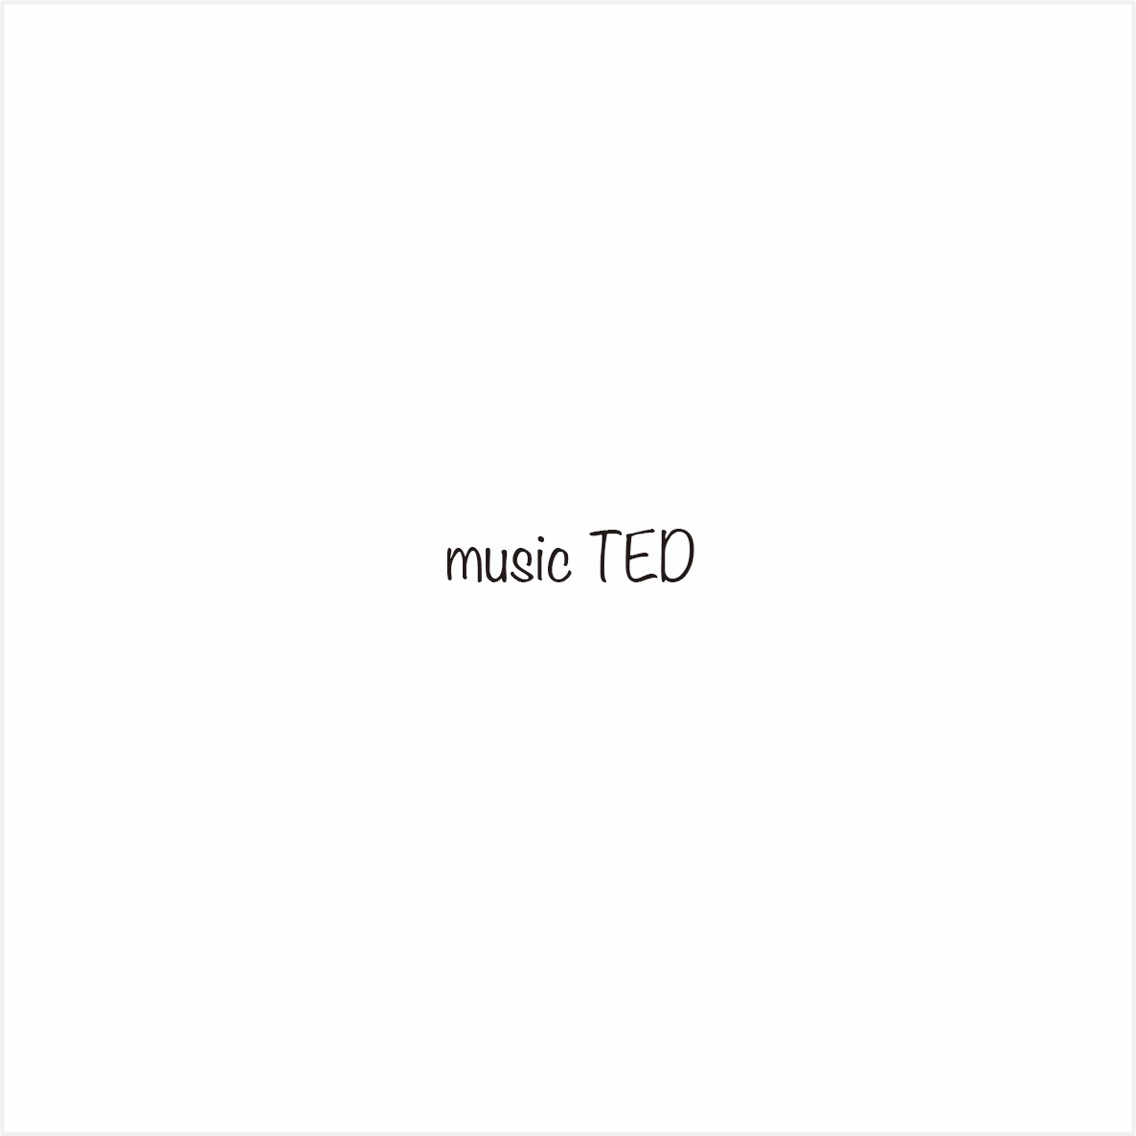 music TED